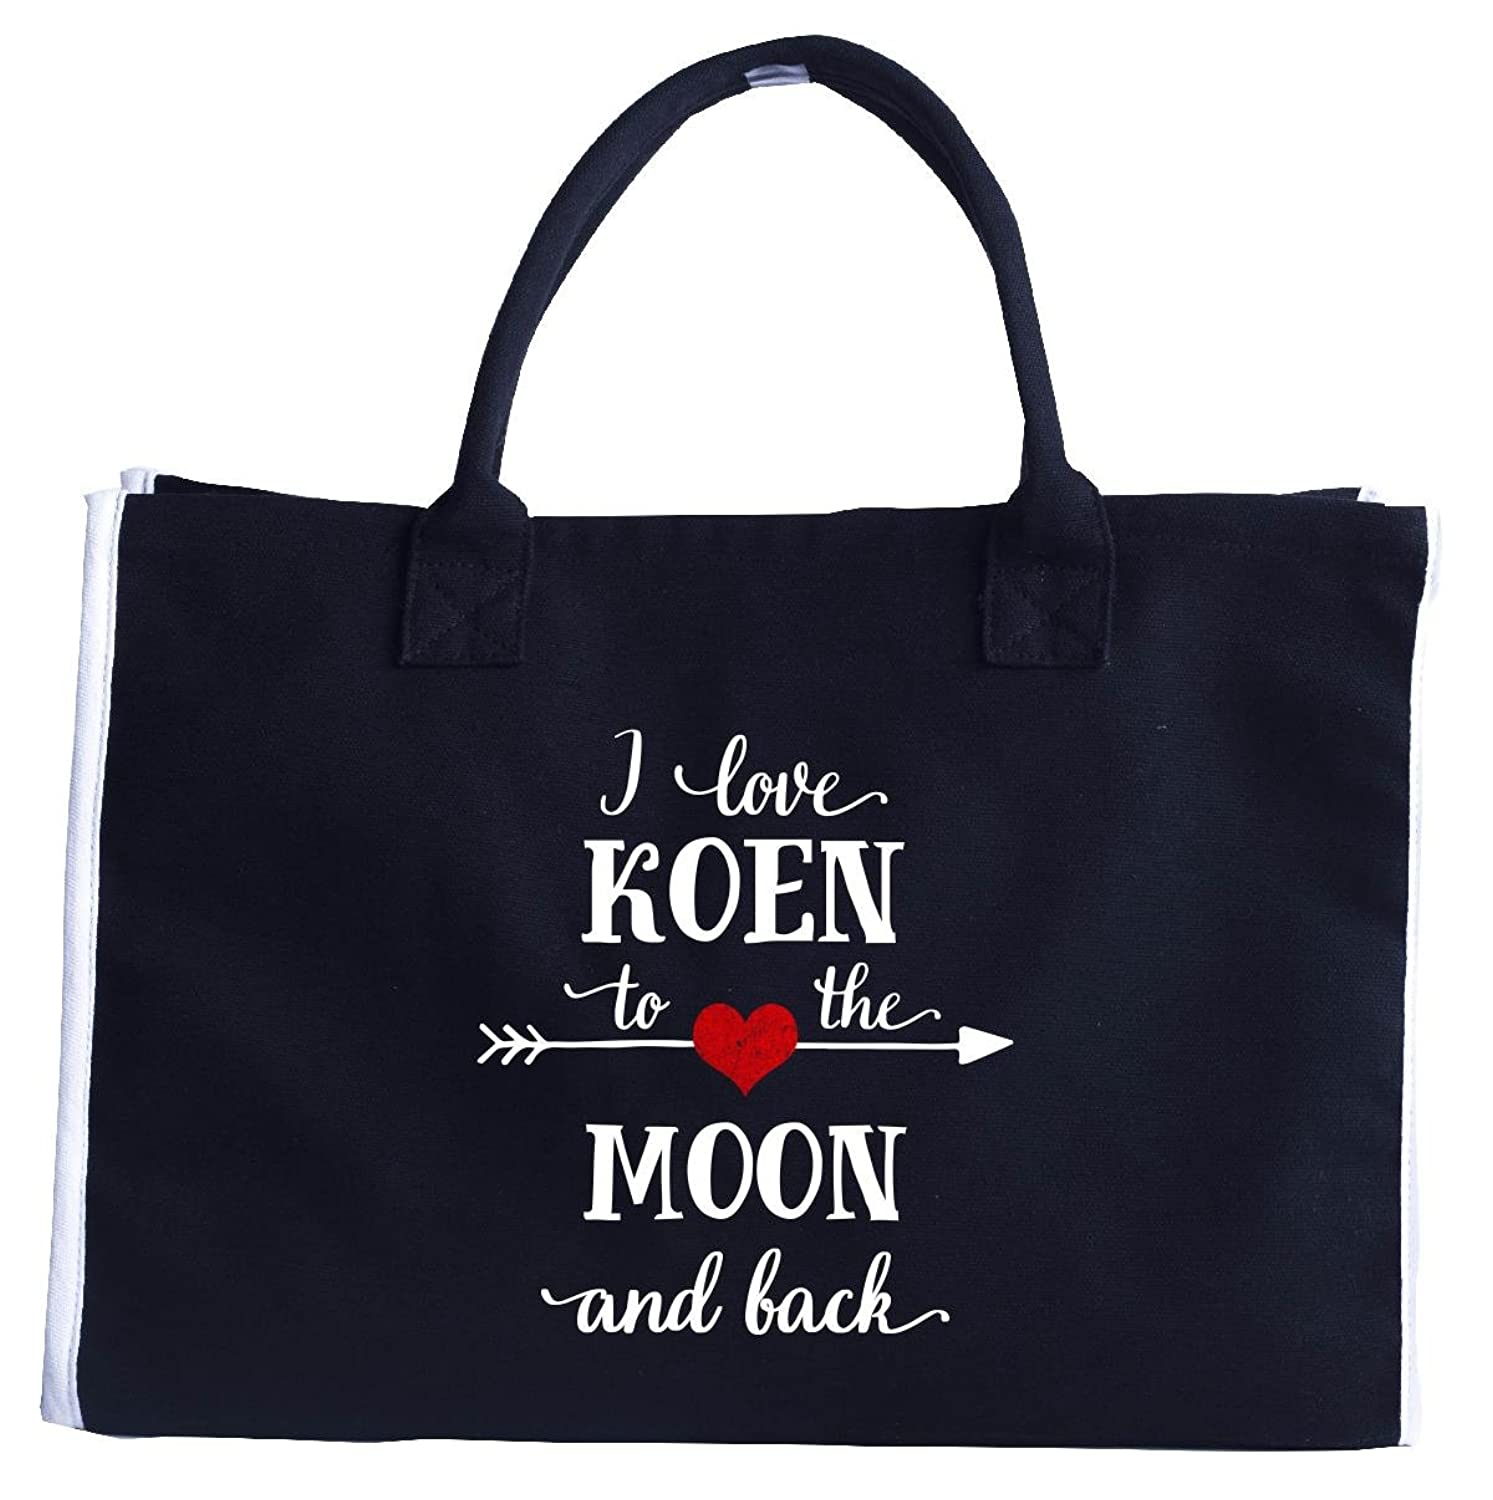 I Love Koen To The Moon And Back.gift For Girlfriend - Fashion Tote Bag